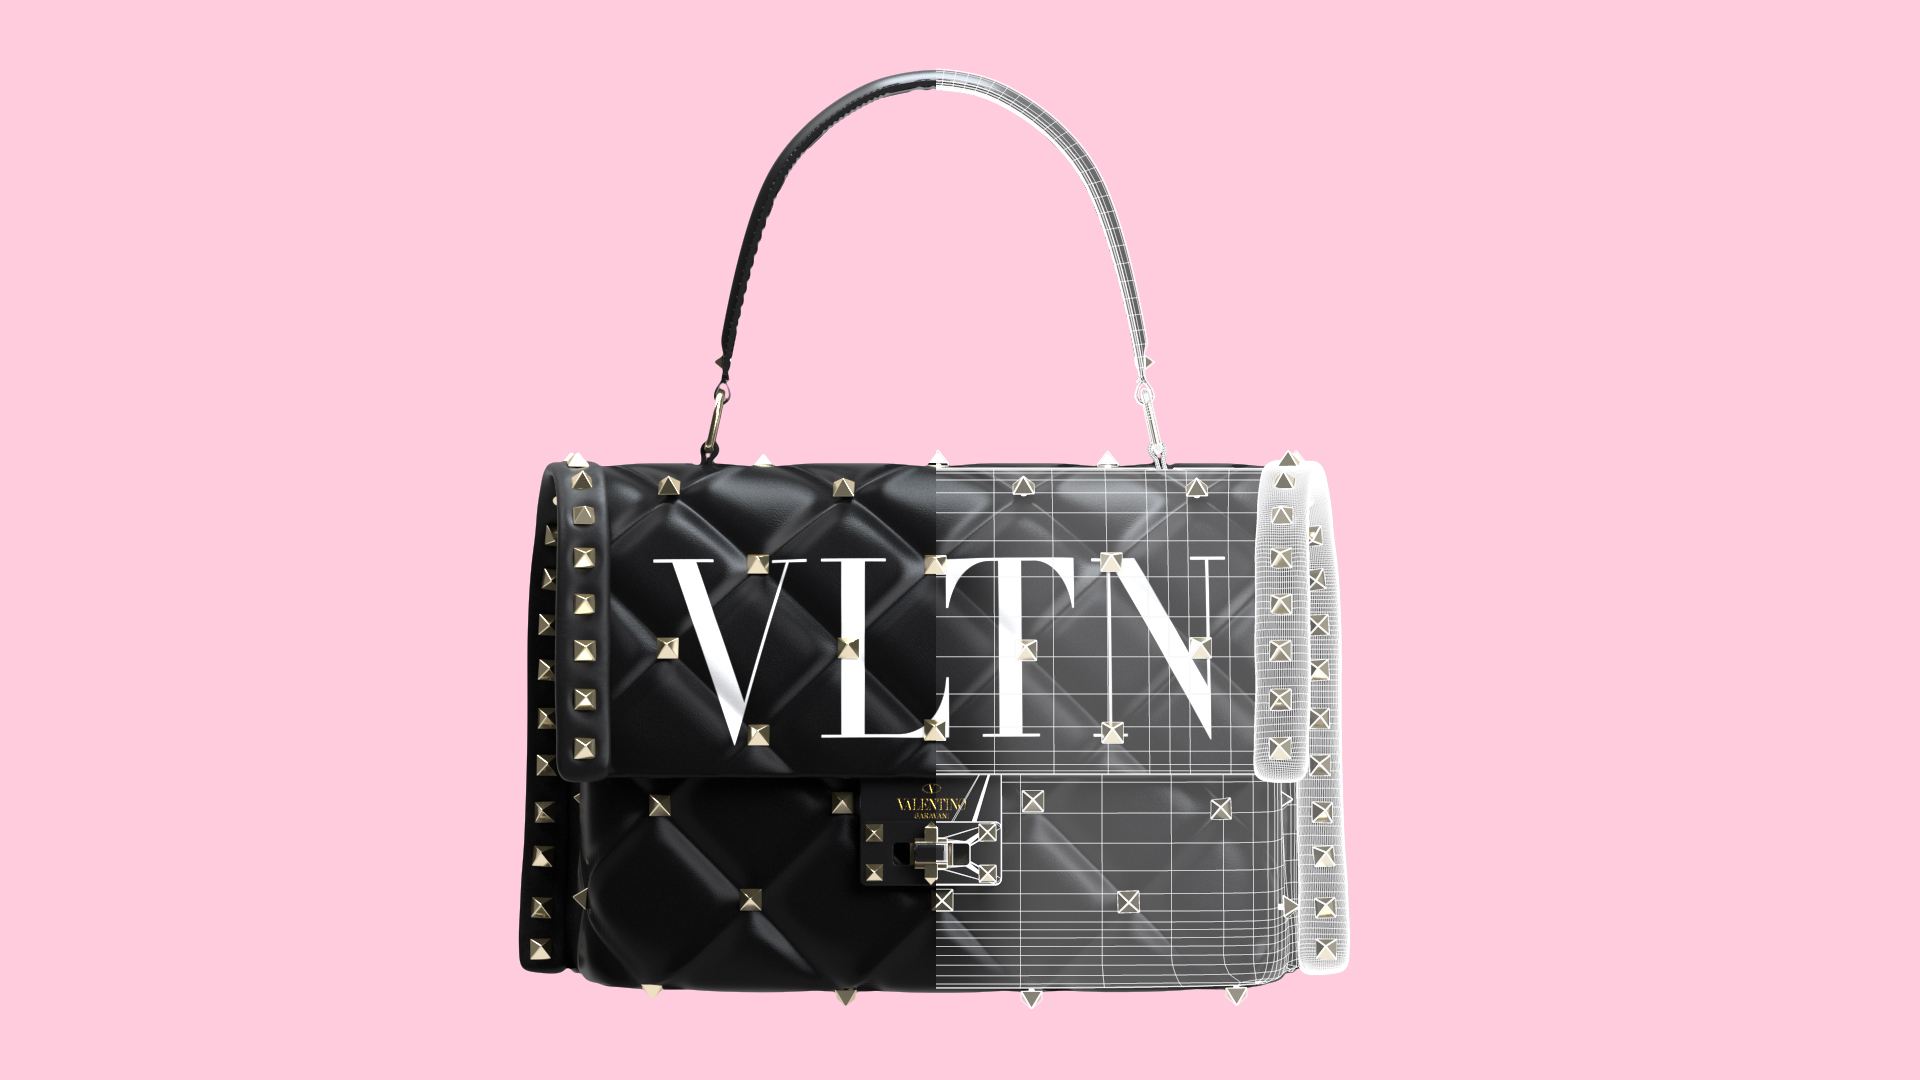 BAG_4_front_side_extraweg_valentino_cell_v003.jpg